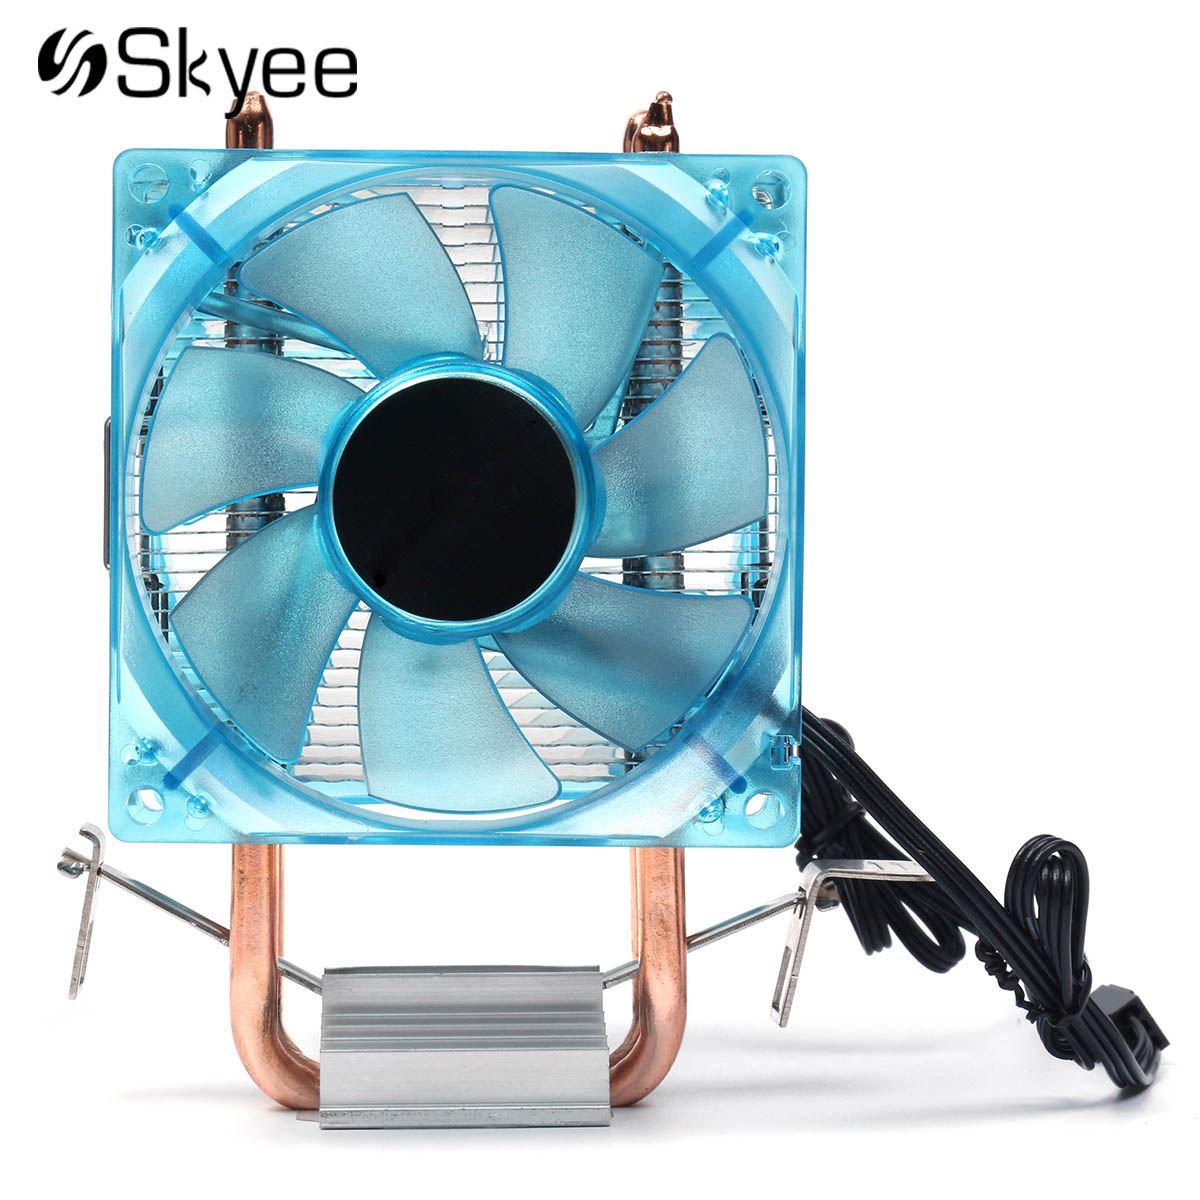 2018 LED CPU Cooling Fan 90mm Dual Copper Pipe Aluminum Heatsink Cooler Cooling Fan for AMD FM1 AM2 + AM3 +Intel 775 1155 1156 pcooler s90f 10cm 4 pin pwm cooling fan 4 copper heat pipes led cpu cooler cooling fan heat sink for intel lga775 for amd am2